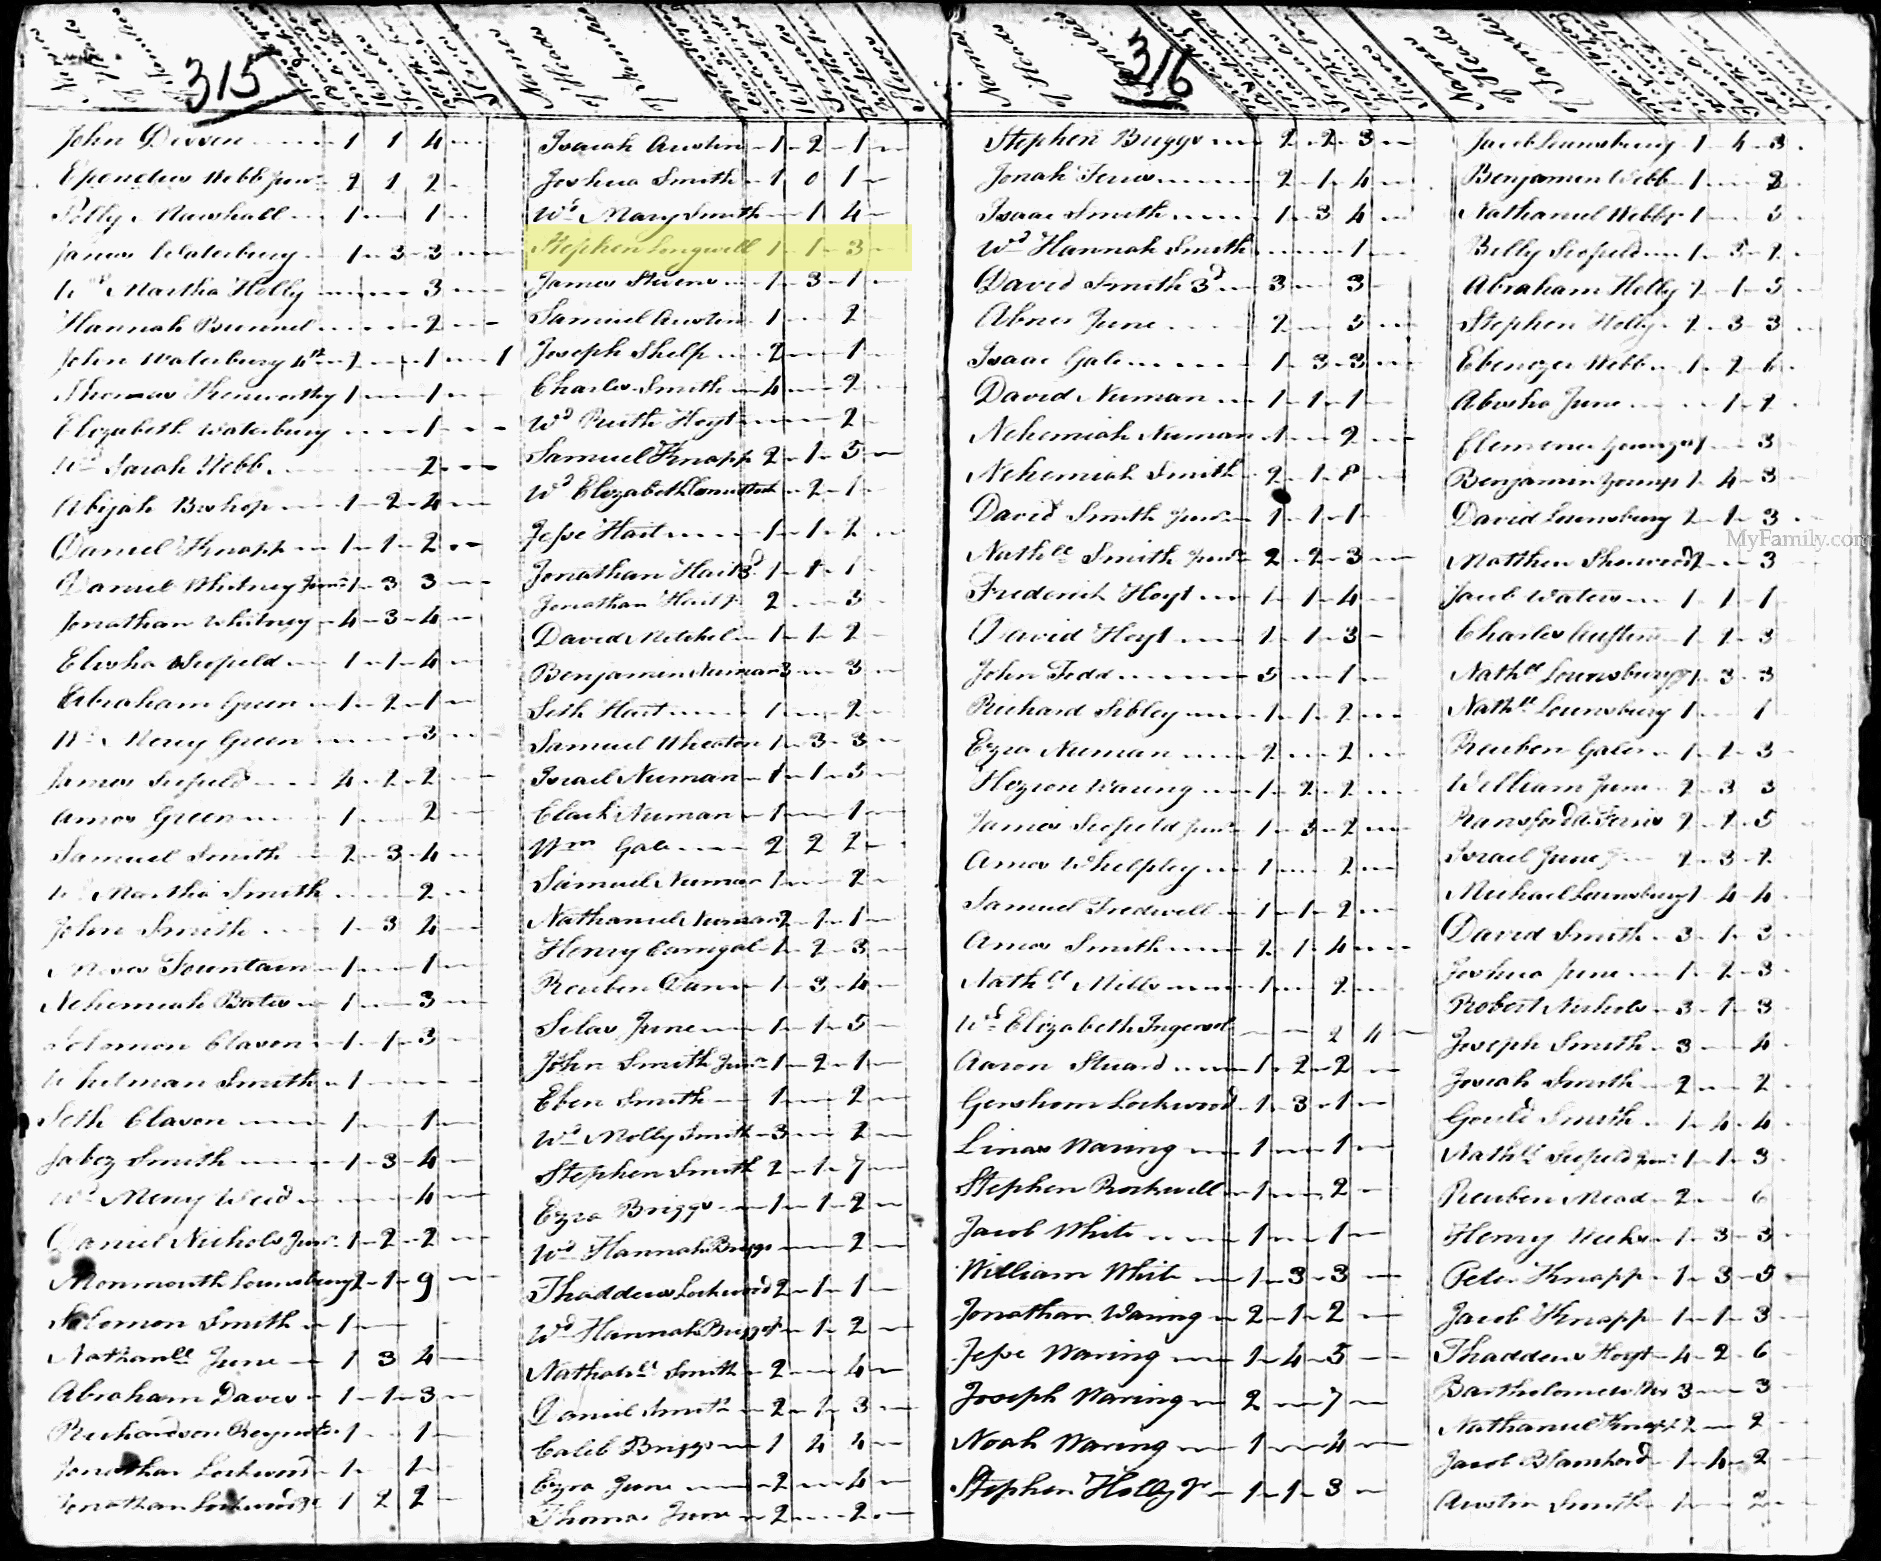 Family Tree: The First Census